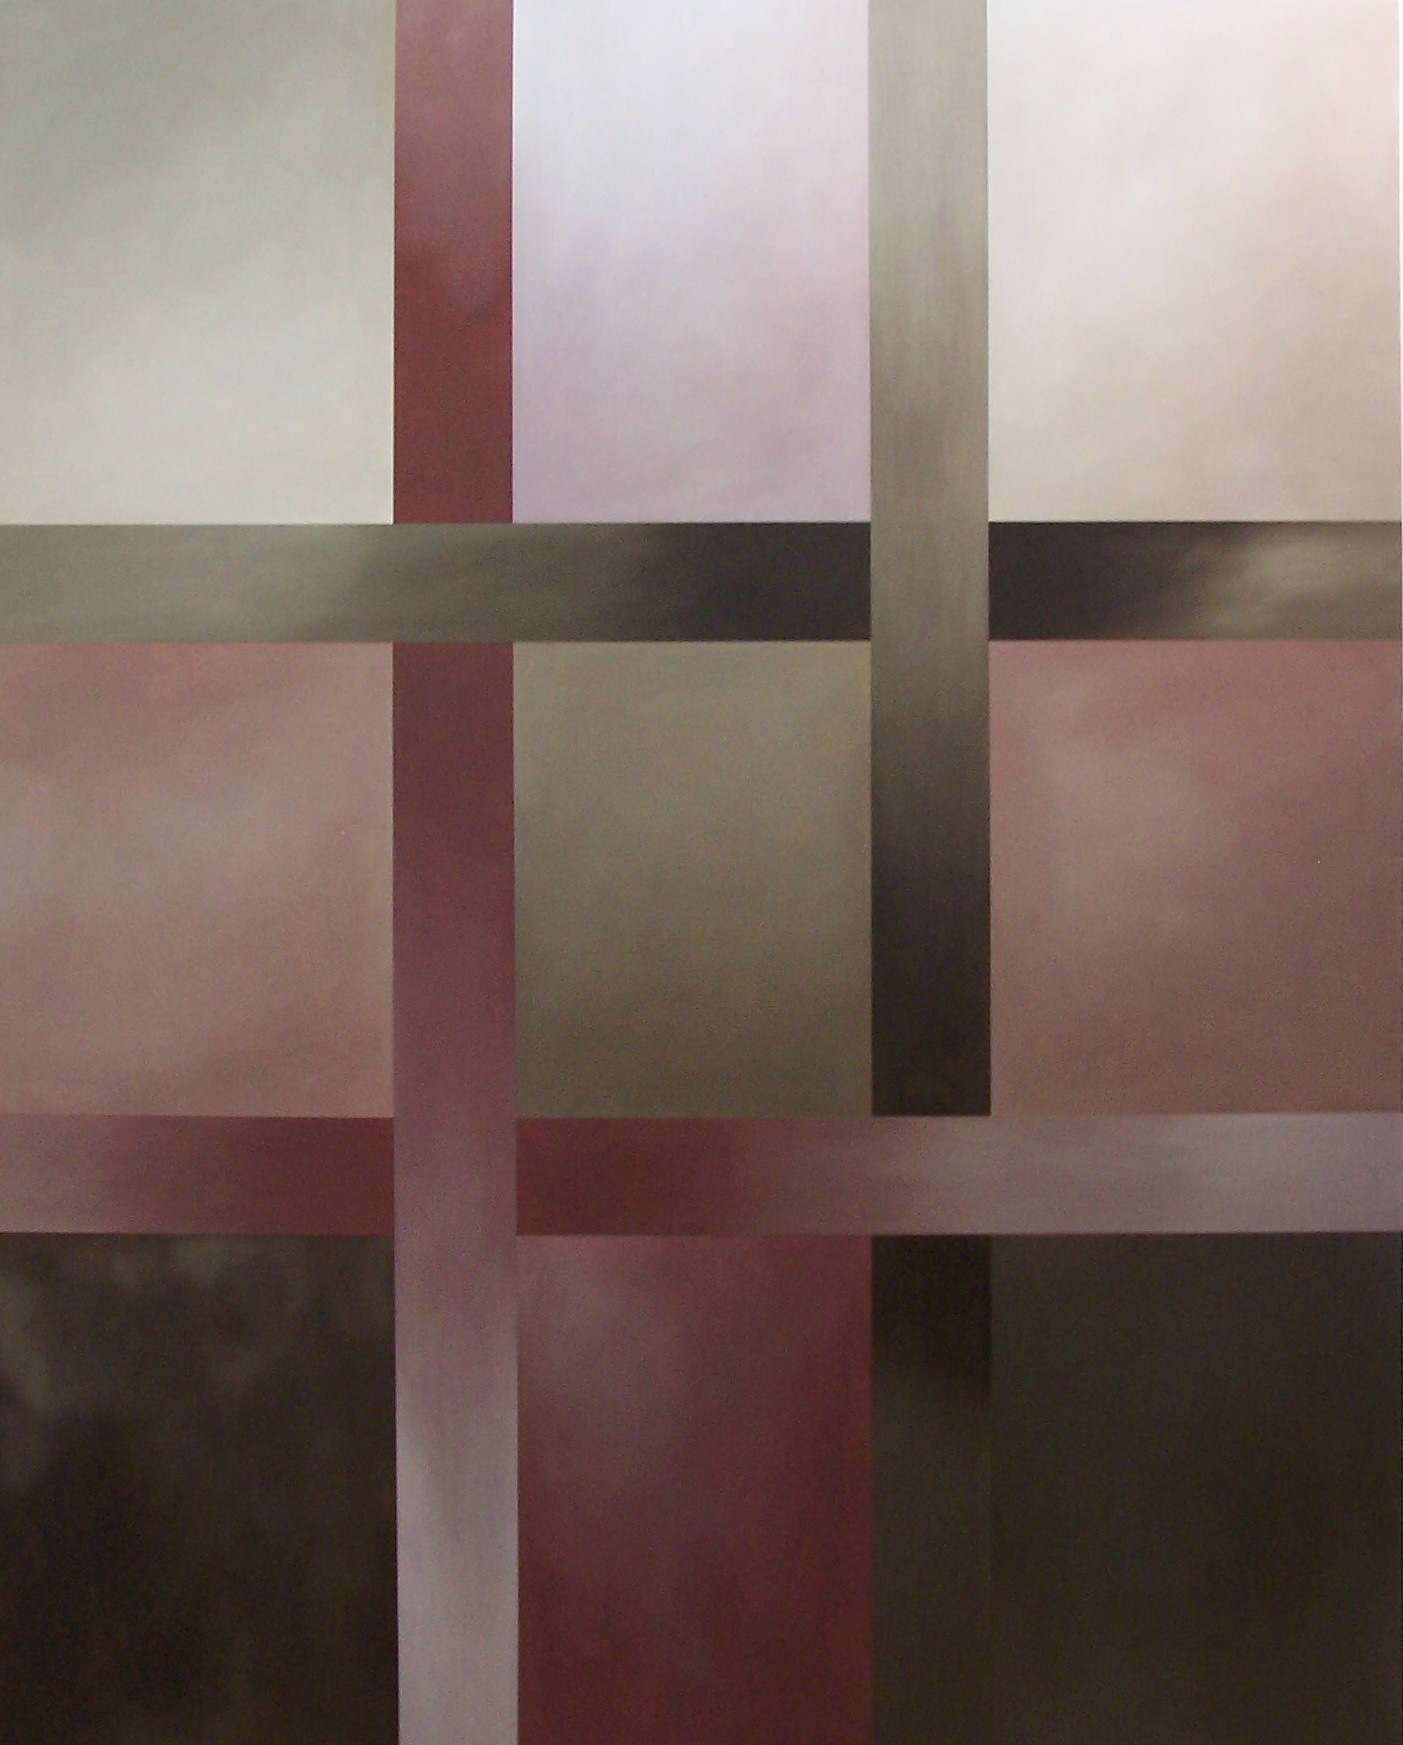 Grid 150x120cm Oil on Canvas 2006